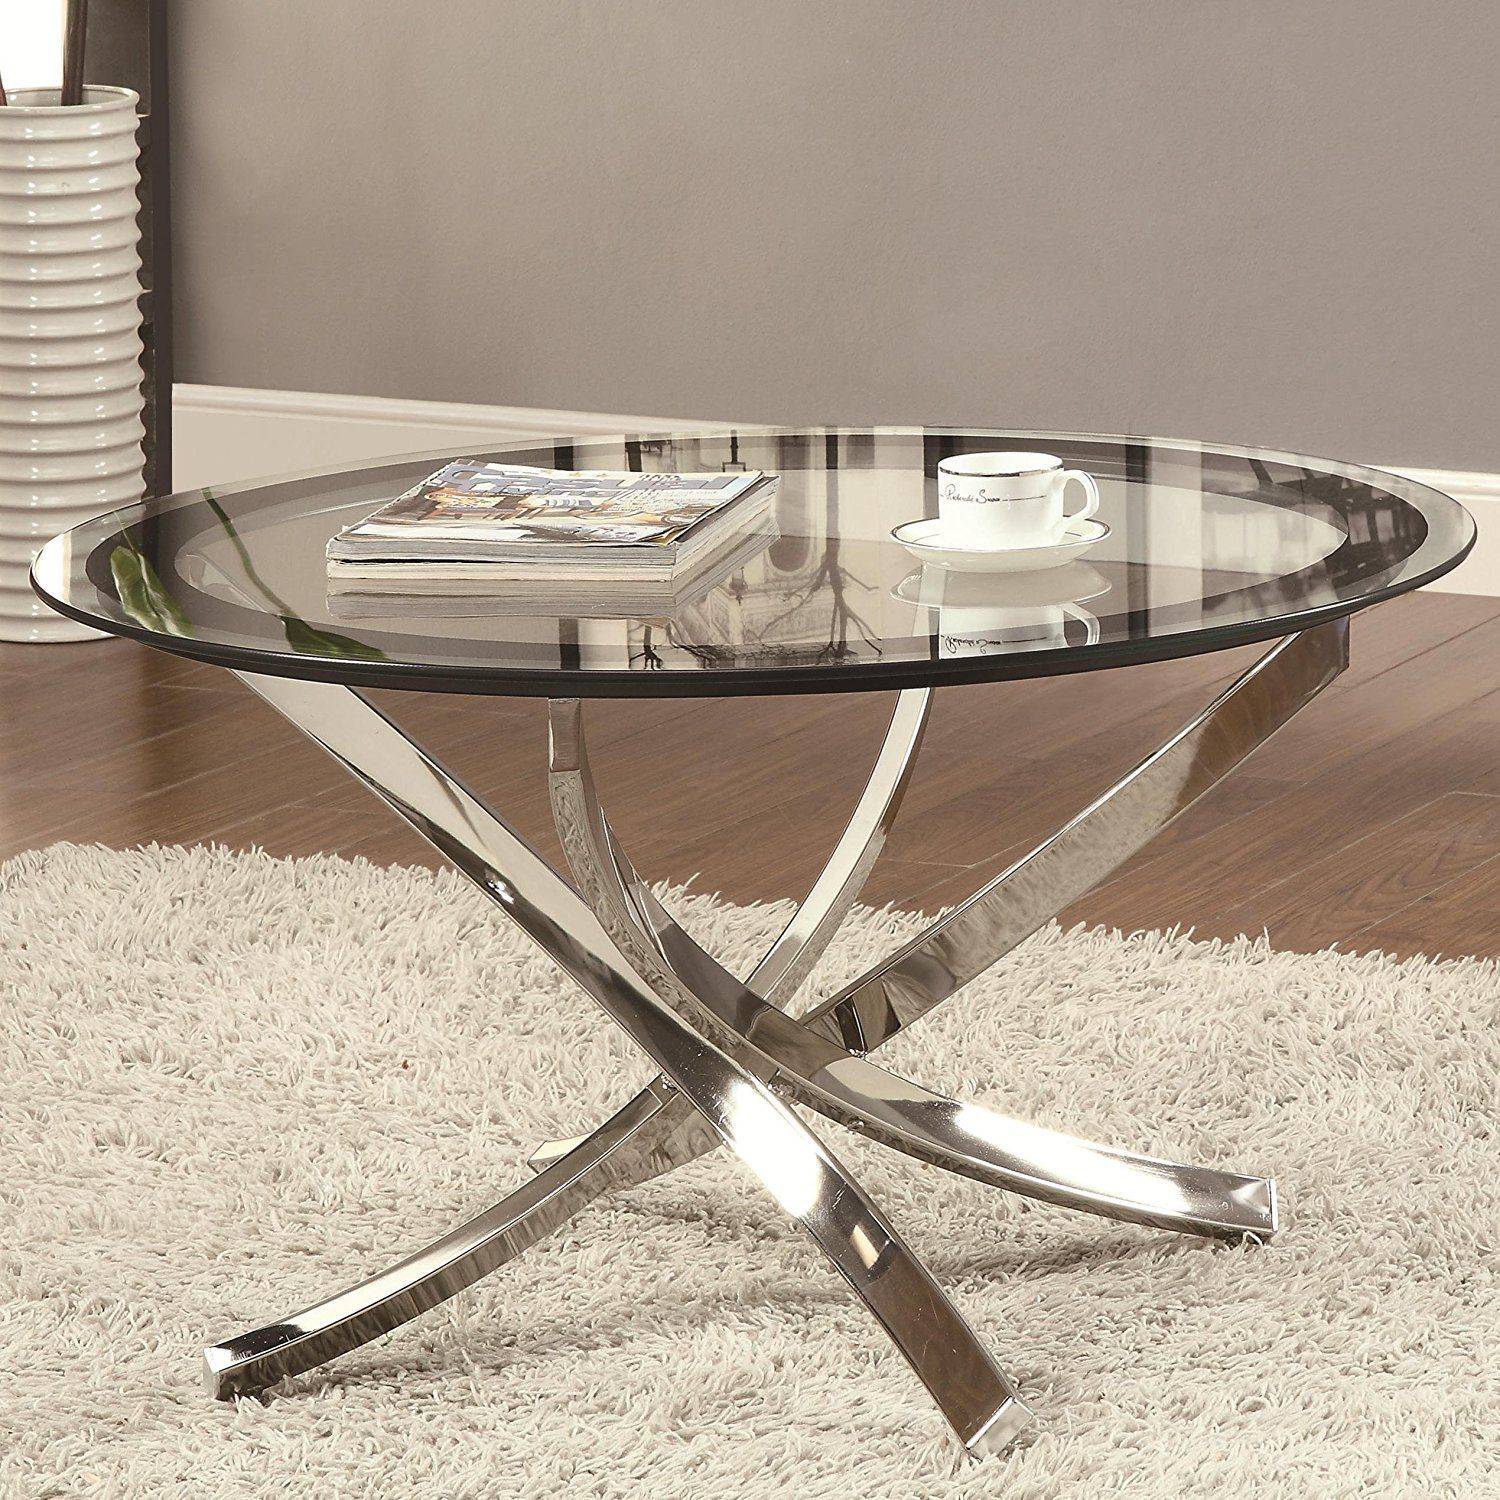 12 Glass Top Display Coffee Table With Drawers Photos Round Glass Coffee Table Modern Glass Coffee Table Display Coffee Table [ 1500 x 1500 Pixel ]